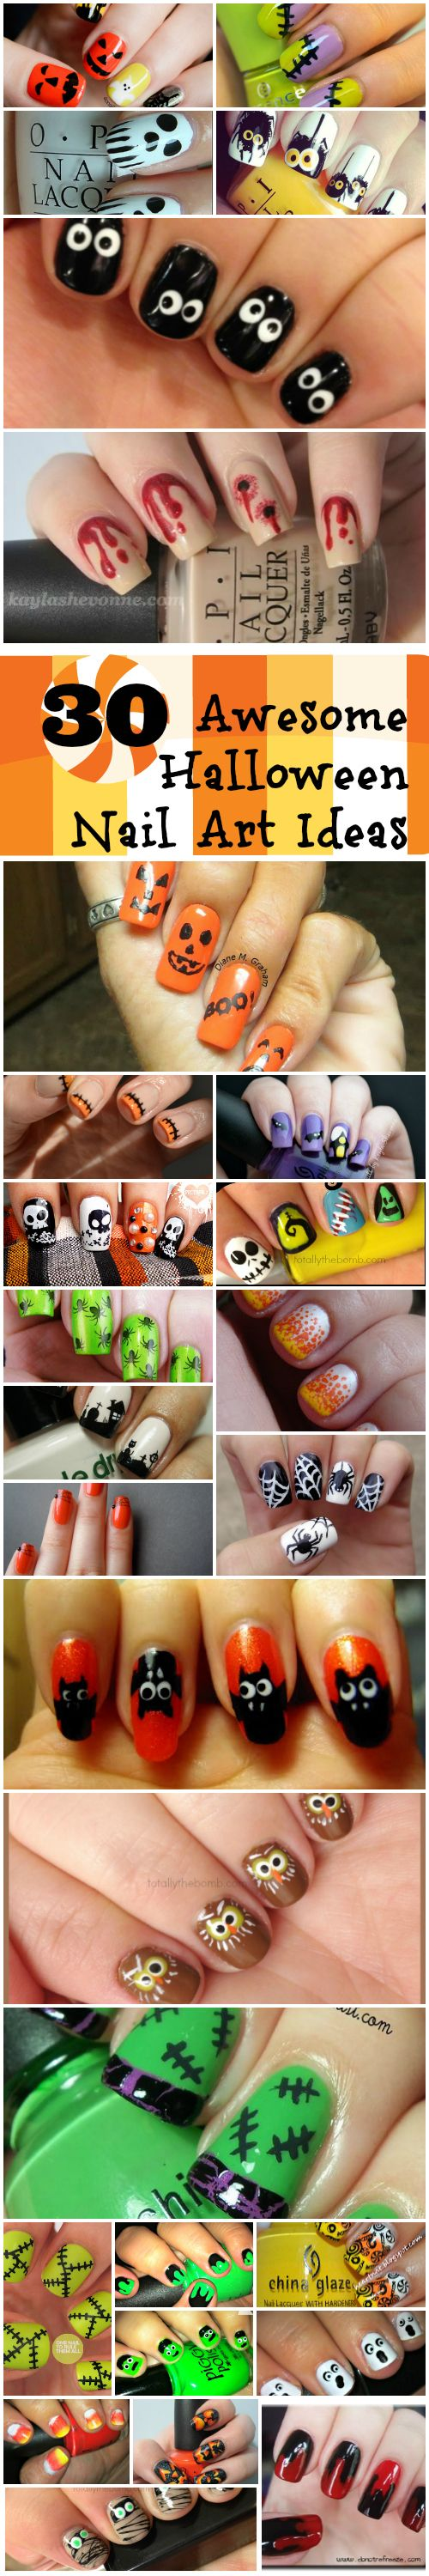 30 Awesome Halloween Nail Art Ideas | 30th, Nail wraps and Holidays